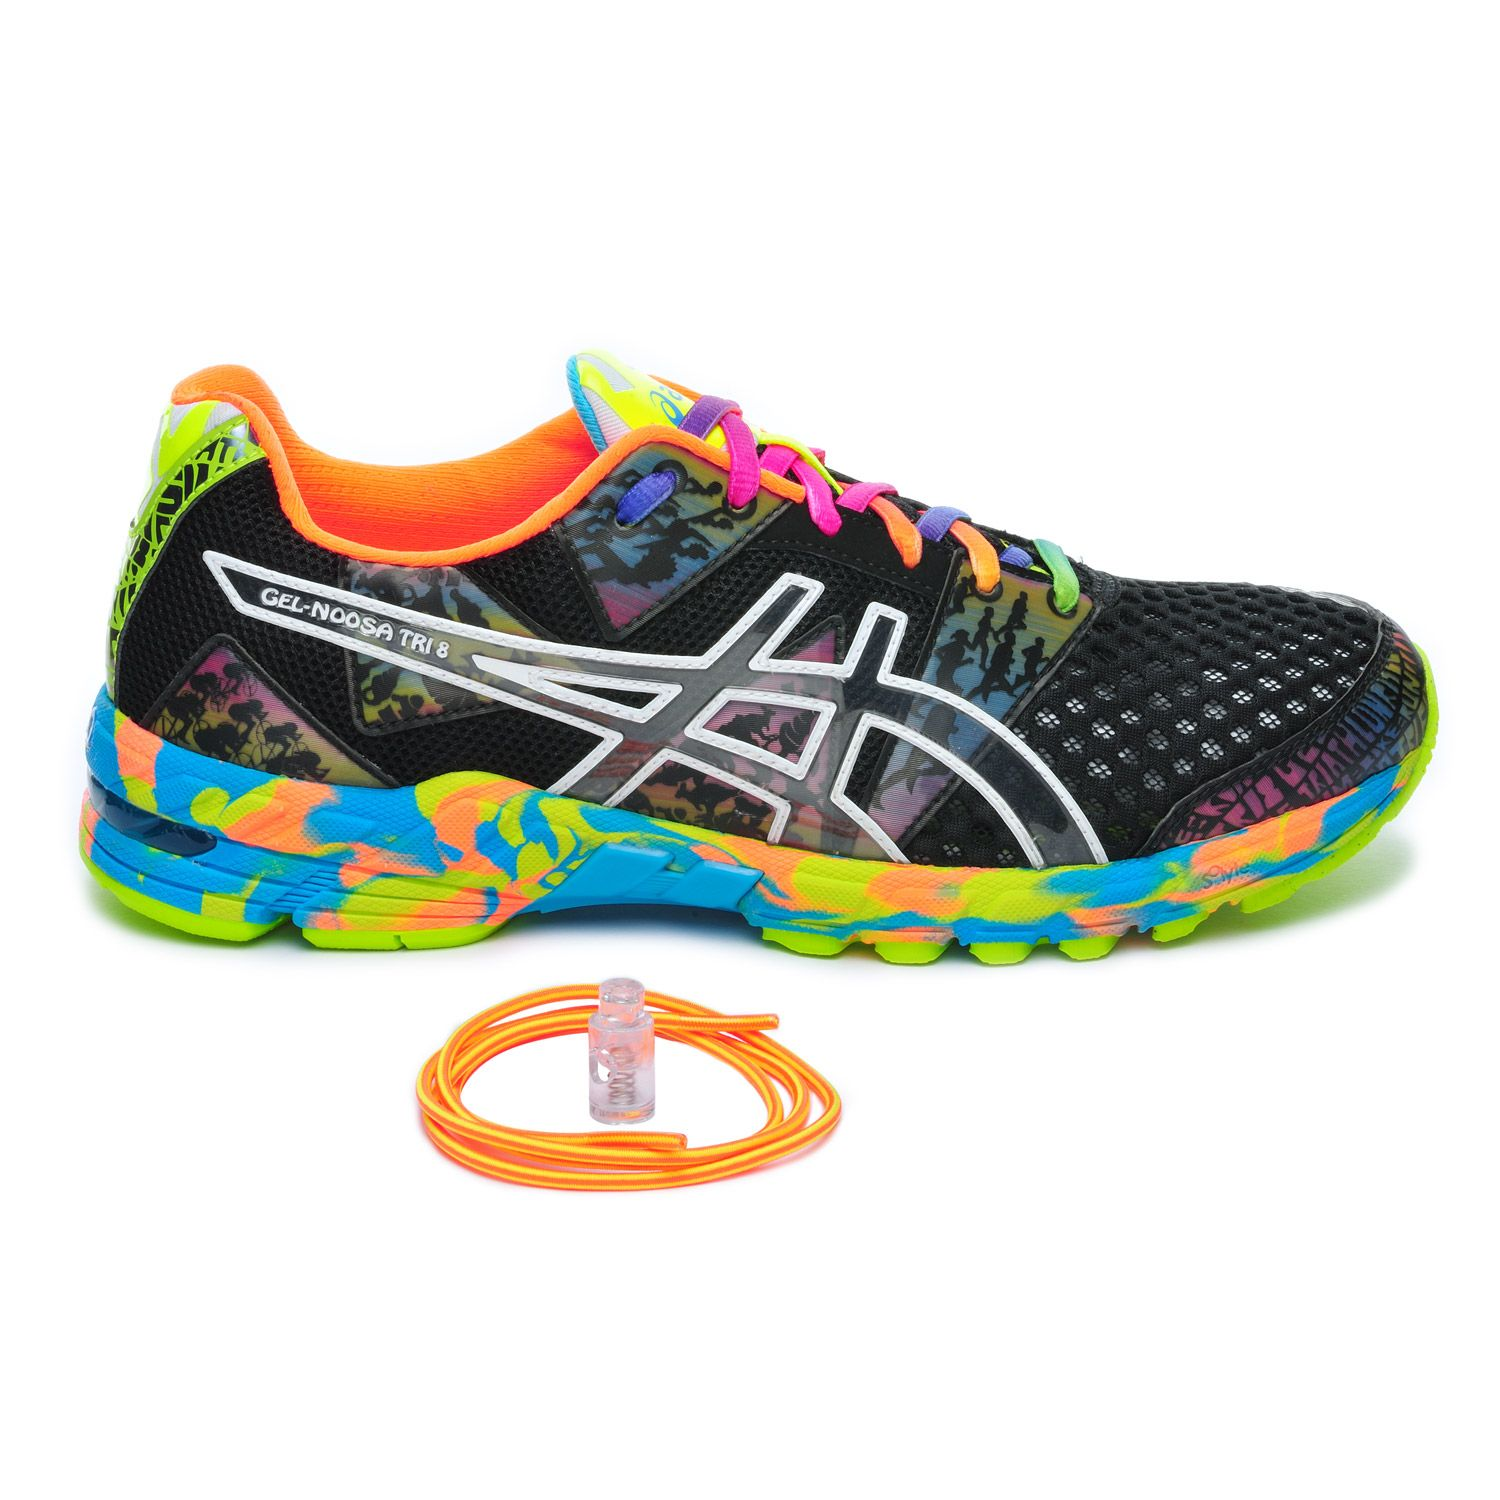 Zapatillas asics running 2014 zapatillas running asics gel - Chaussures Running Asics Gel Noosa Tri 8 Homme Noir Multicolor